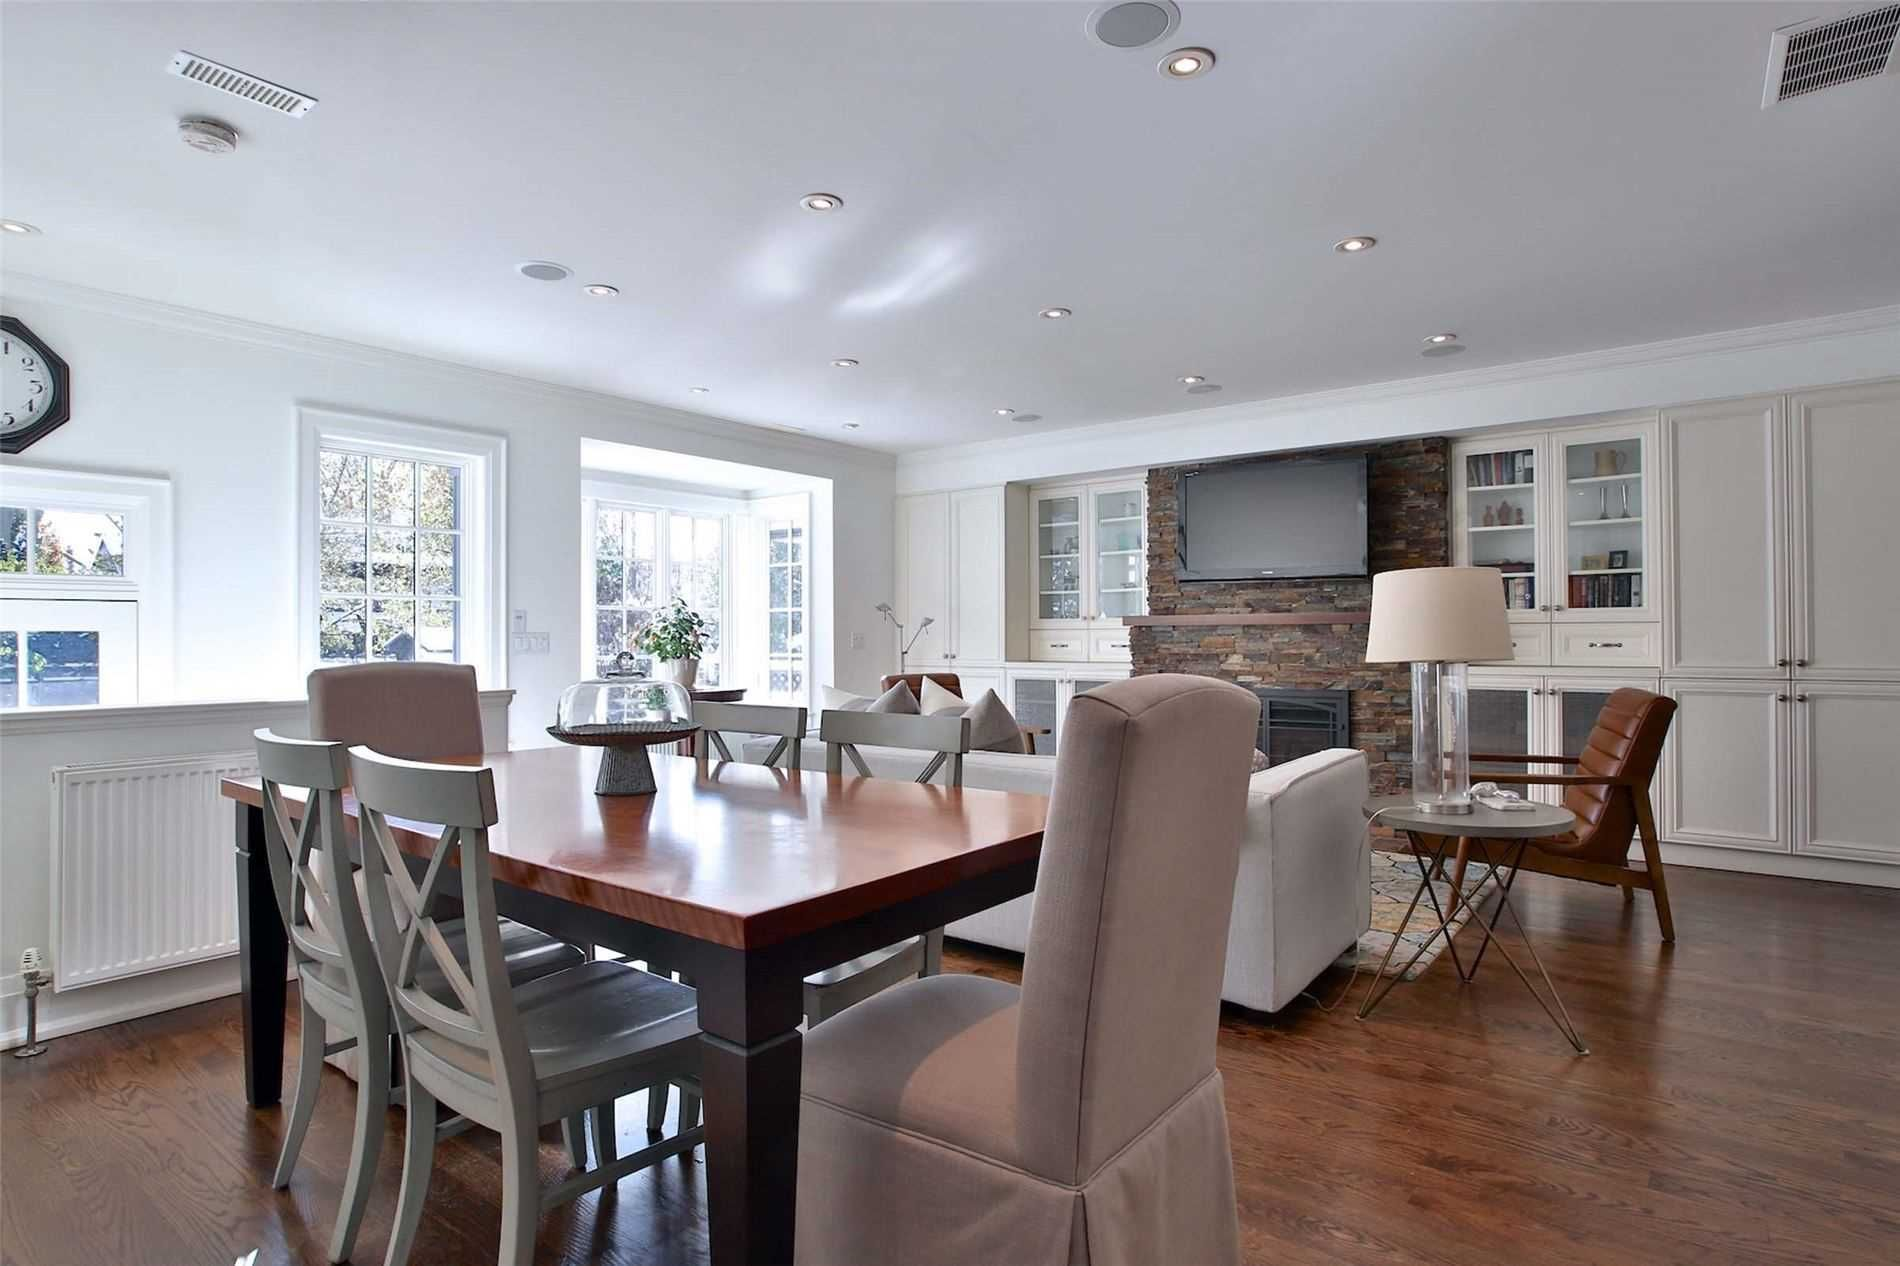 Photo 5: Photos: 181 W Glengrove Avenue in Toronto: Lawrence Park South House (2-Storey) for sale (Toronto C04)  : MLS®# C4633543